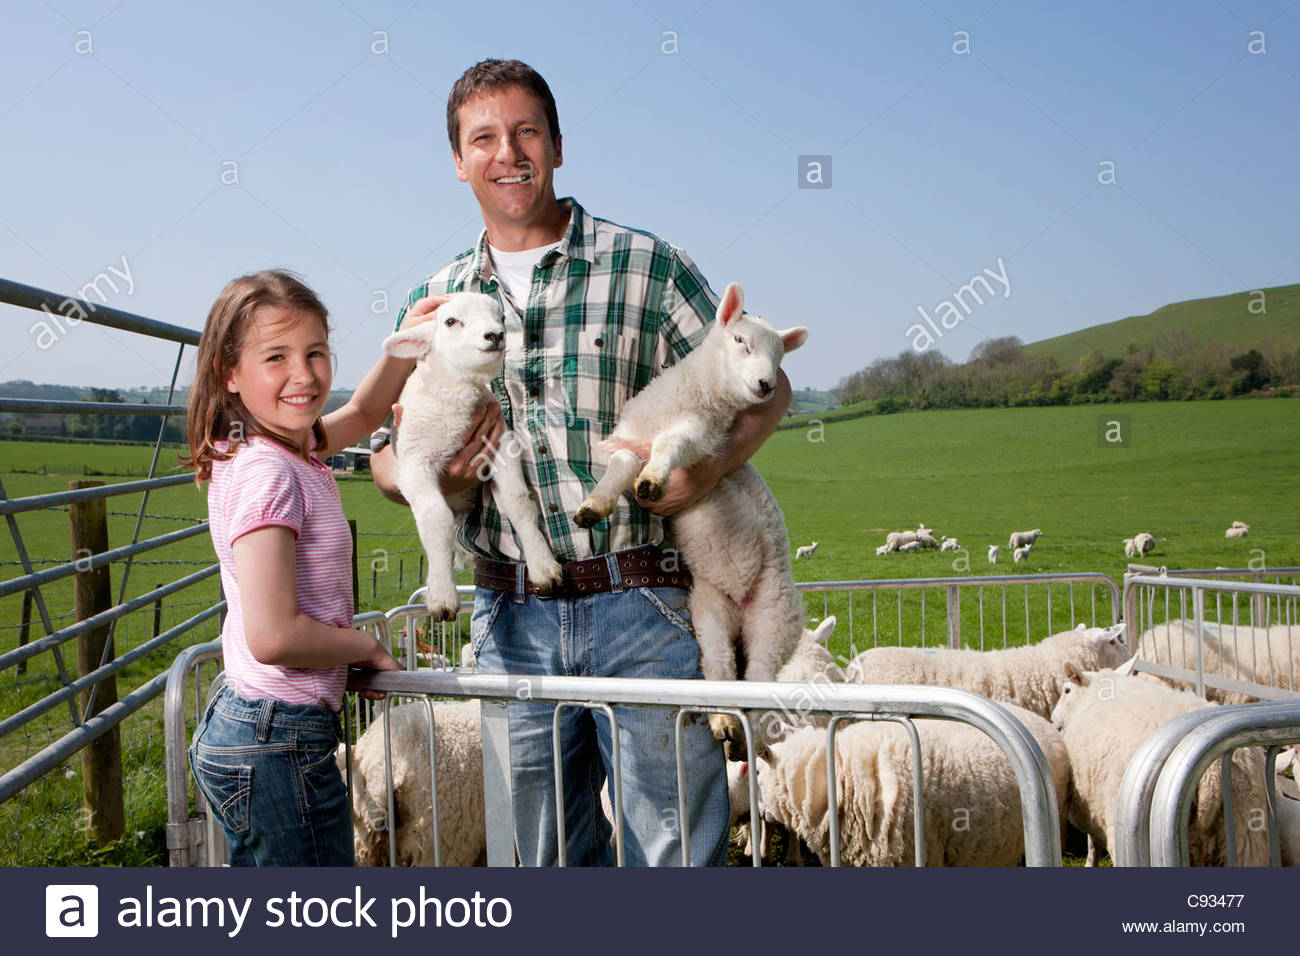 Portrait of shepherd and daughter with sheep in pasture - Stock Image